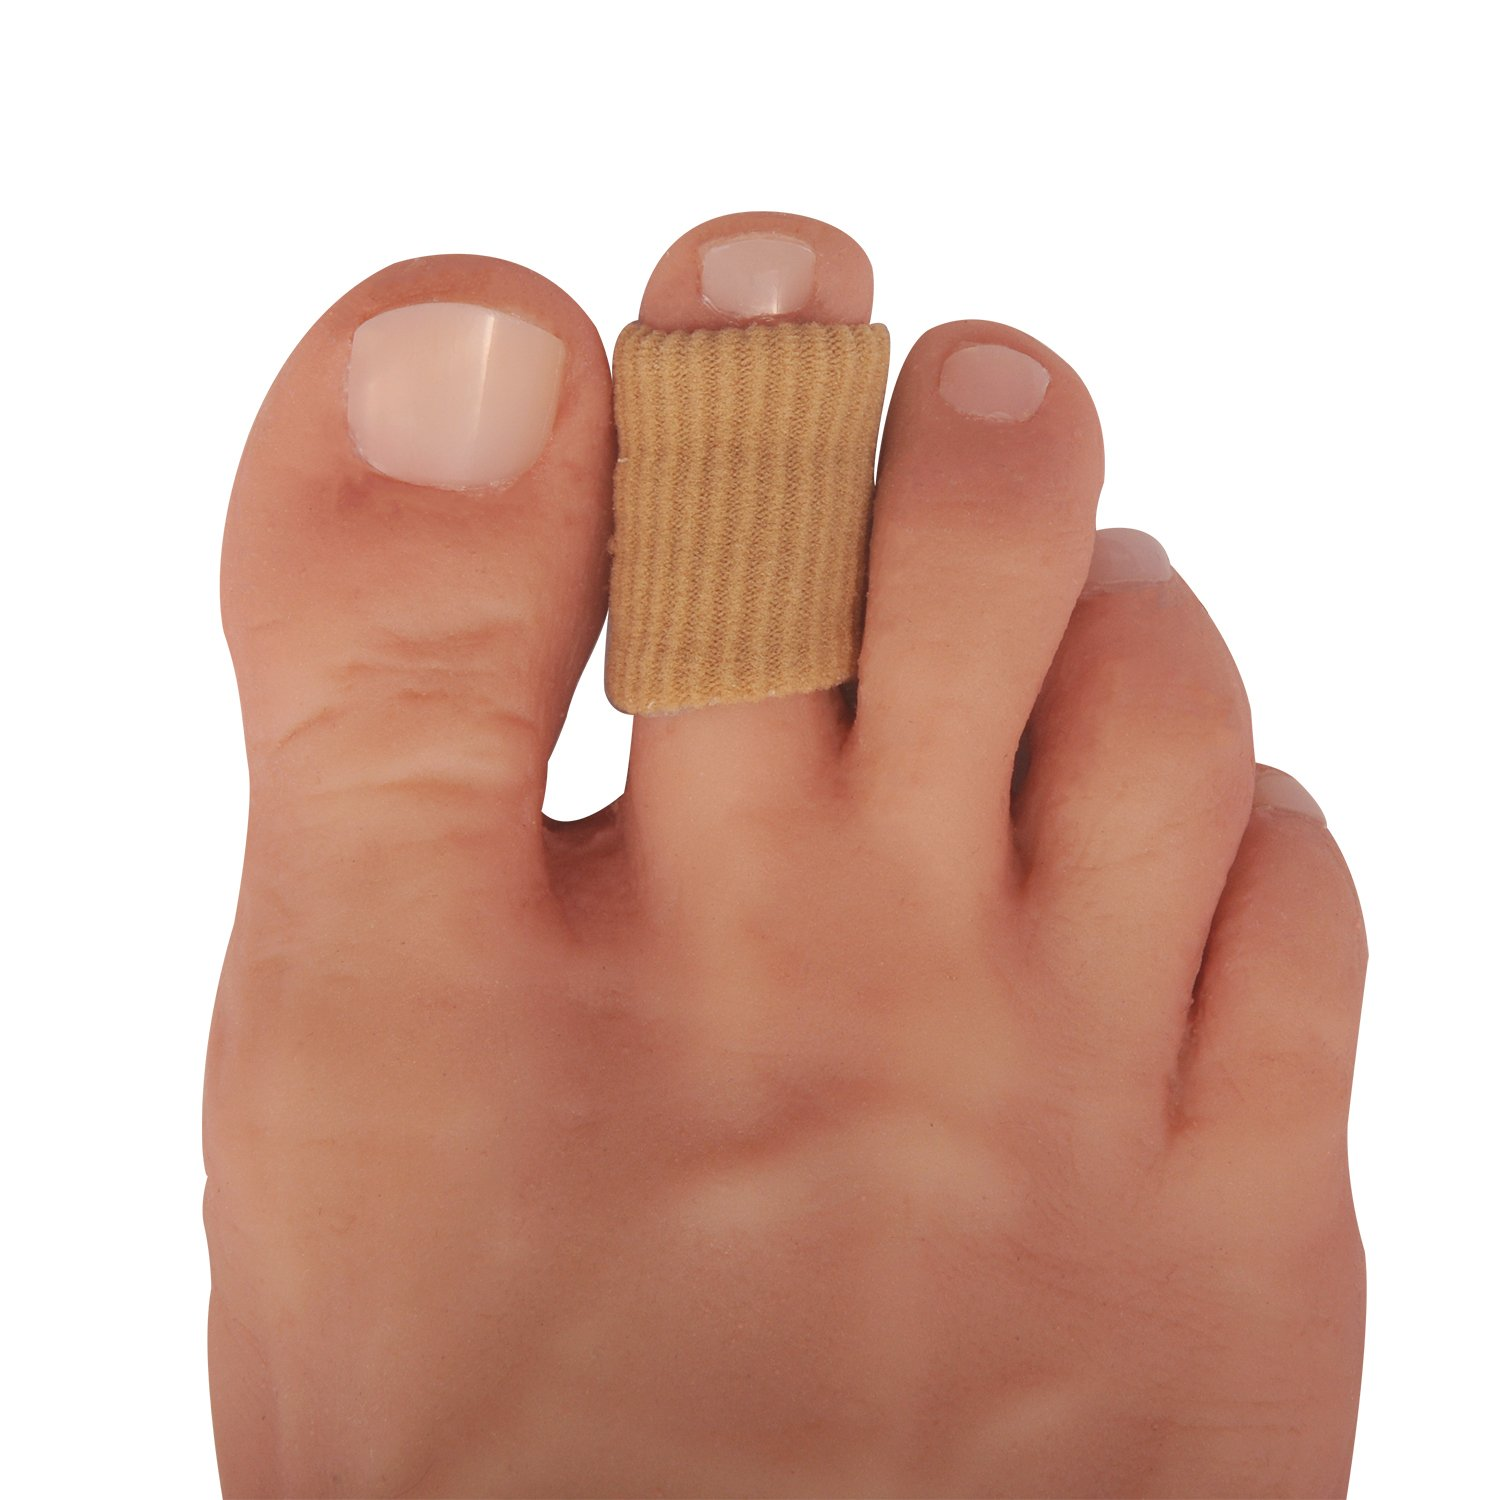 Dr Frederick's Original Fabrigrip Toe Protectors - 2 Multiple-Use Pieces - Toe Covers to Prevent Blisters, Cushion Bunions, More - Small